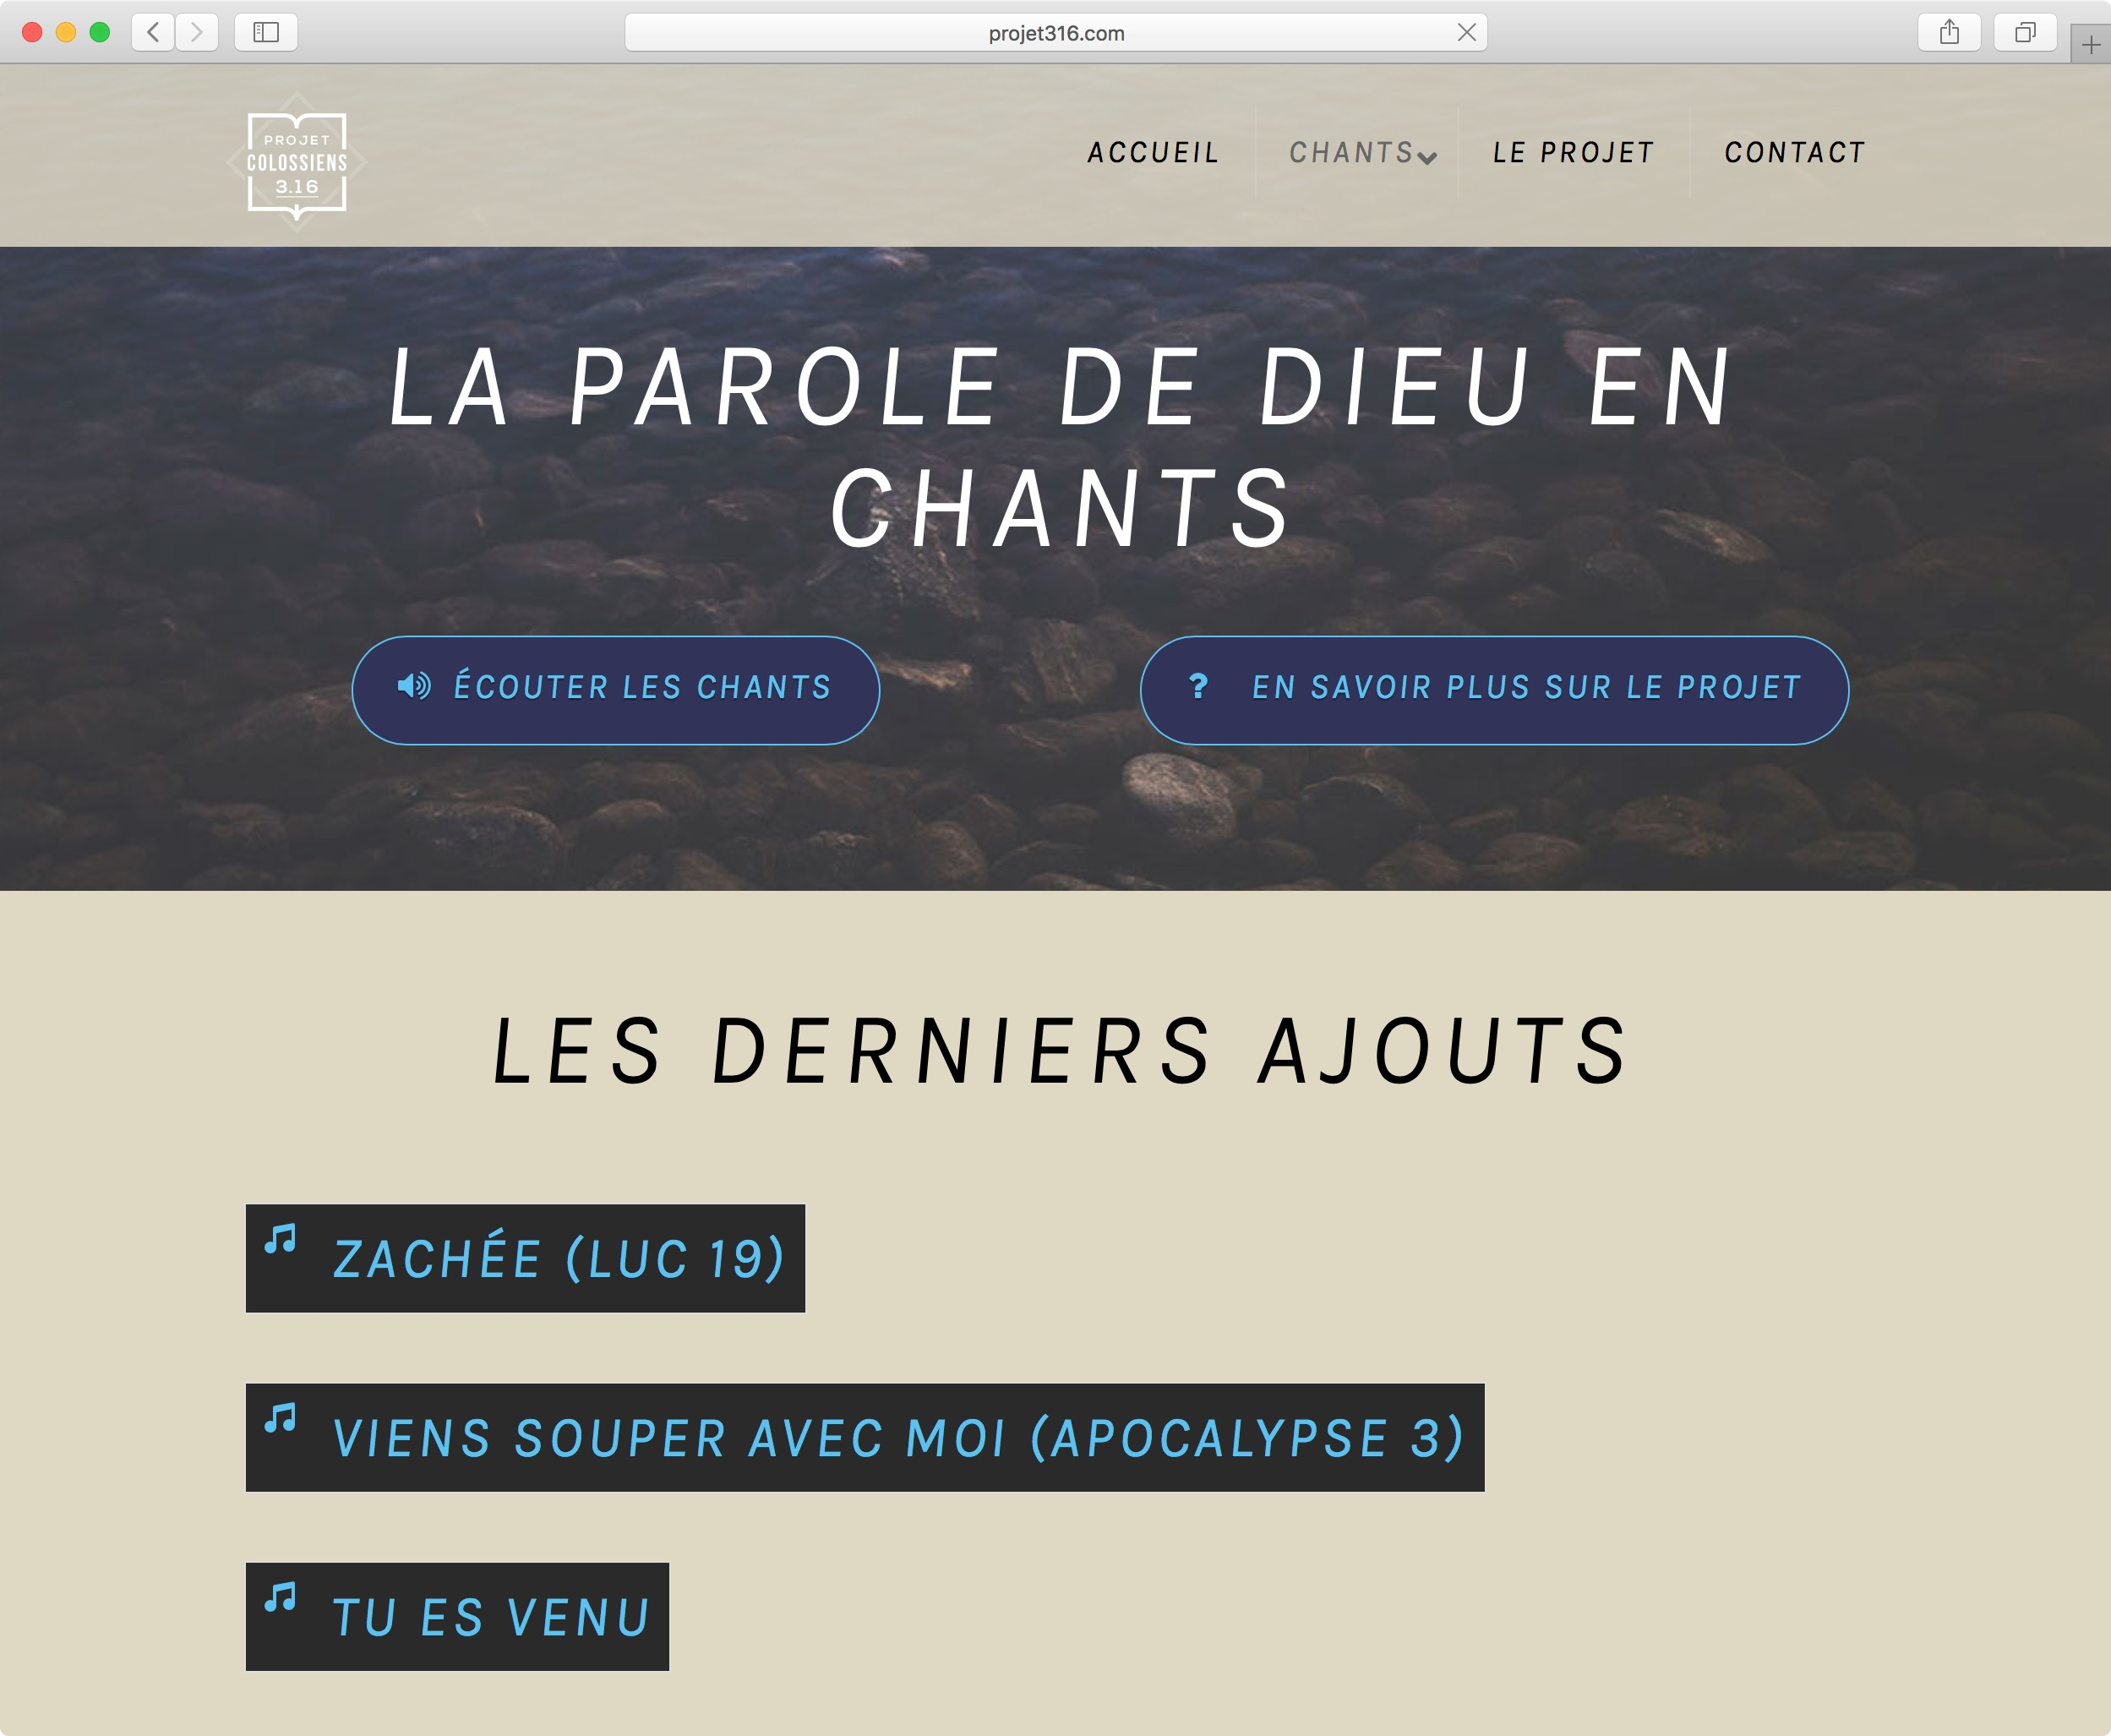 site web projet colossiens 3.16